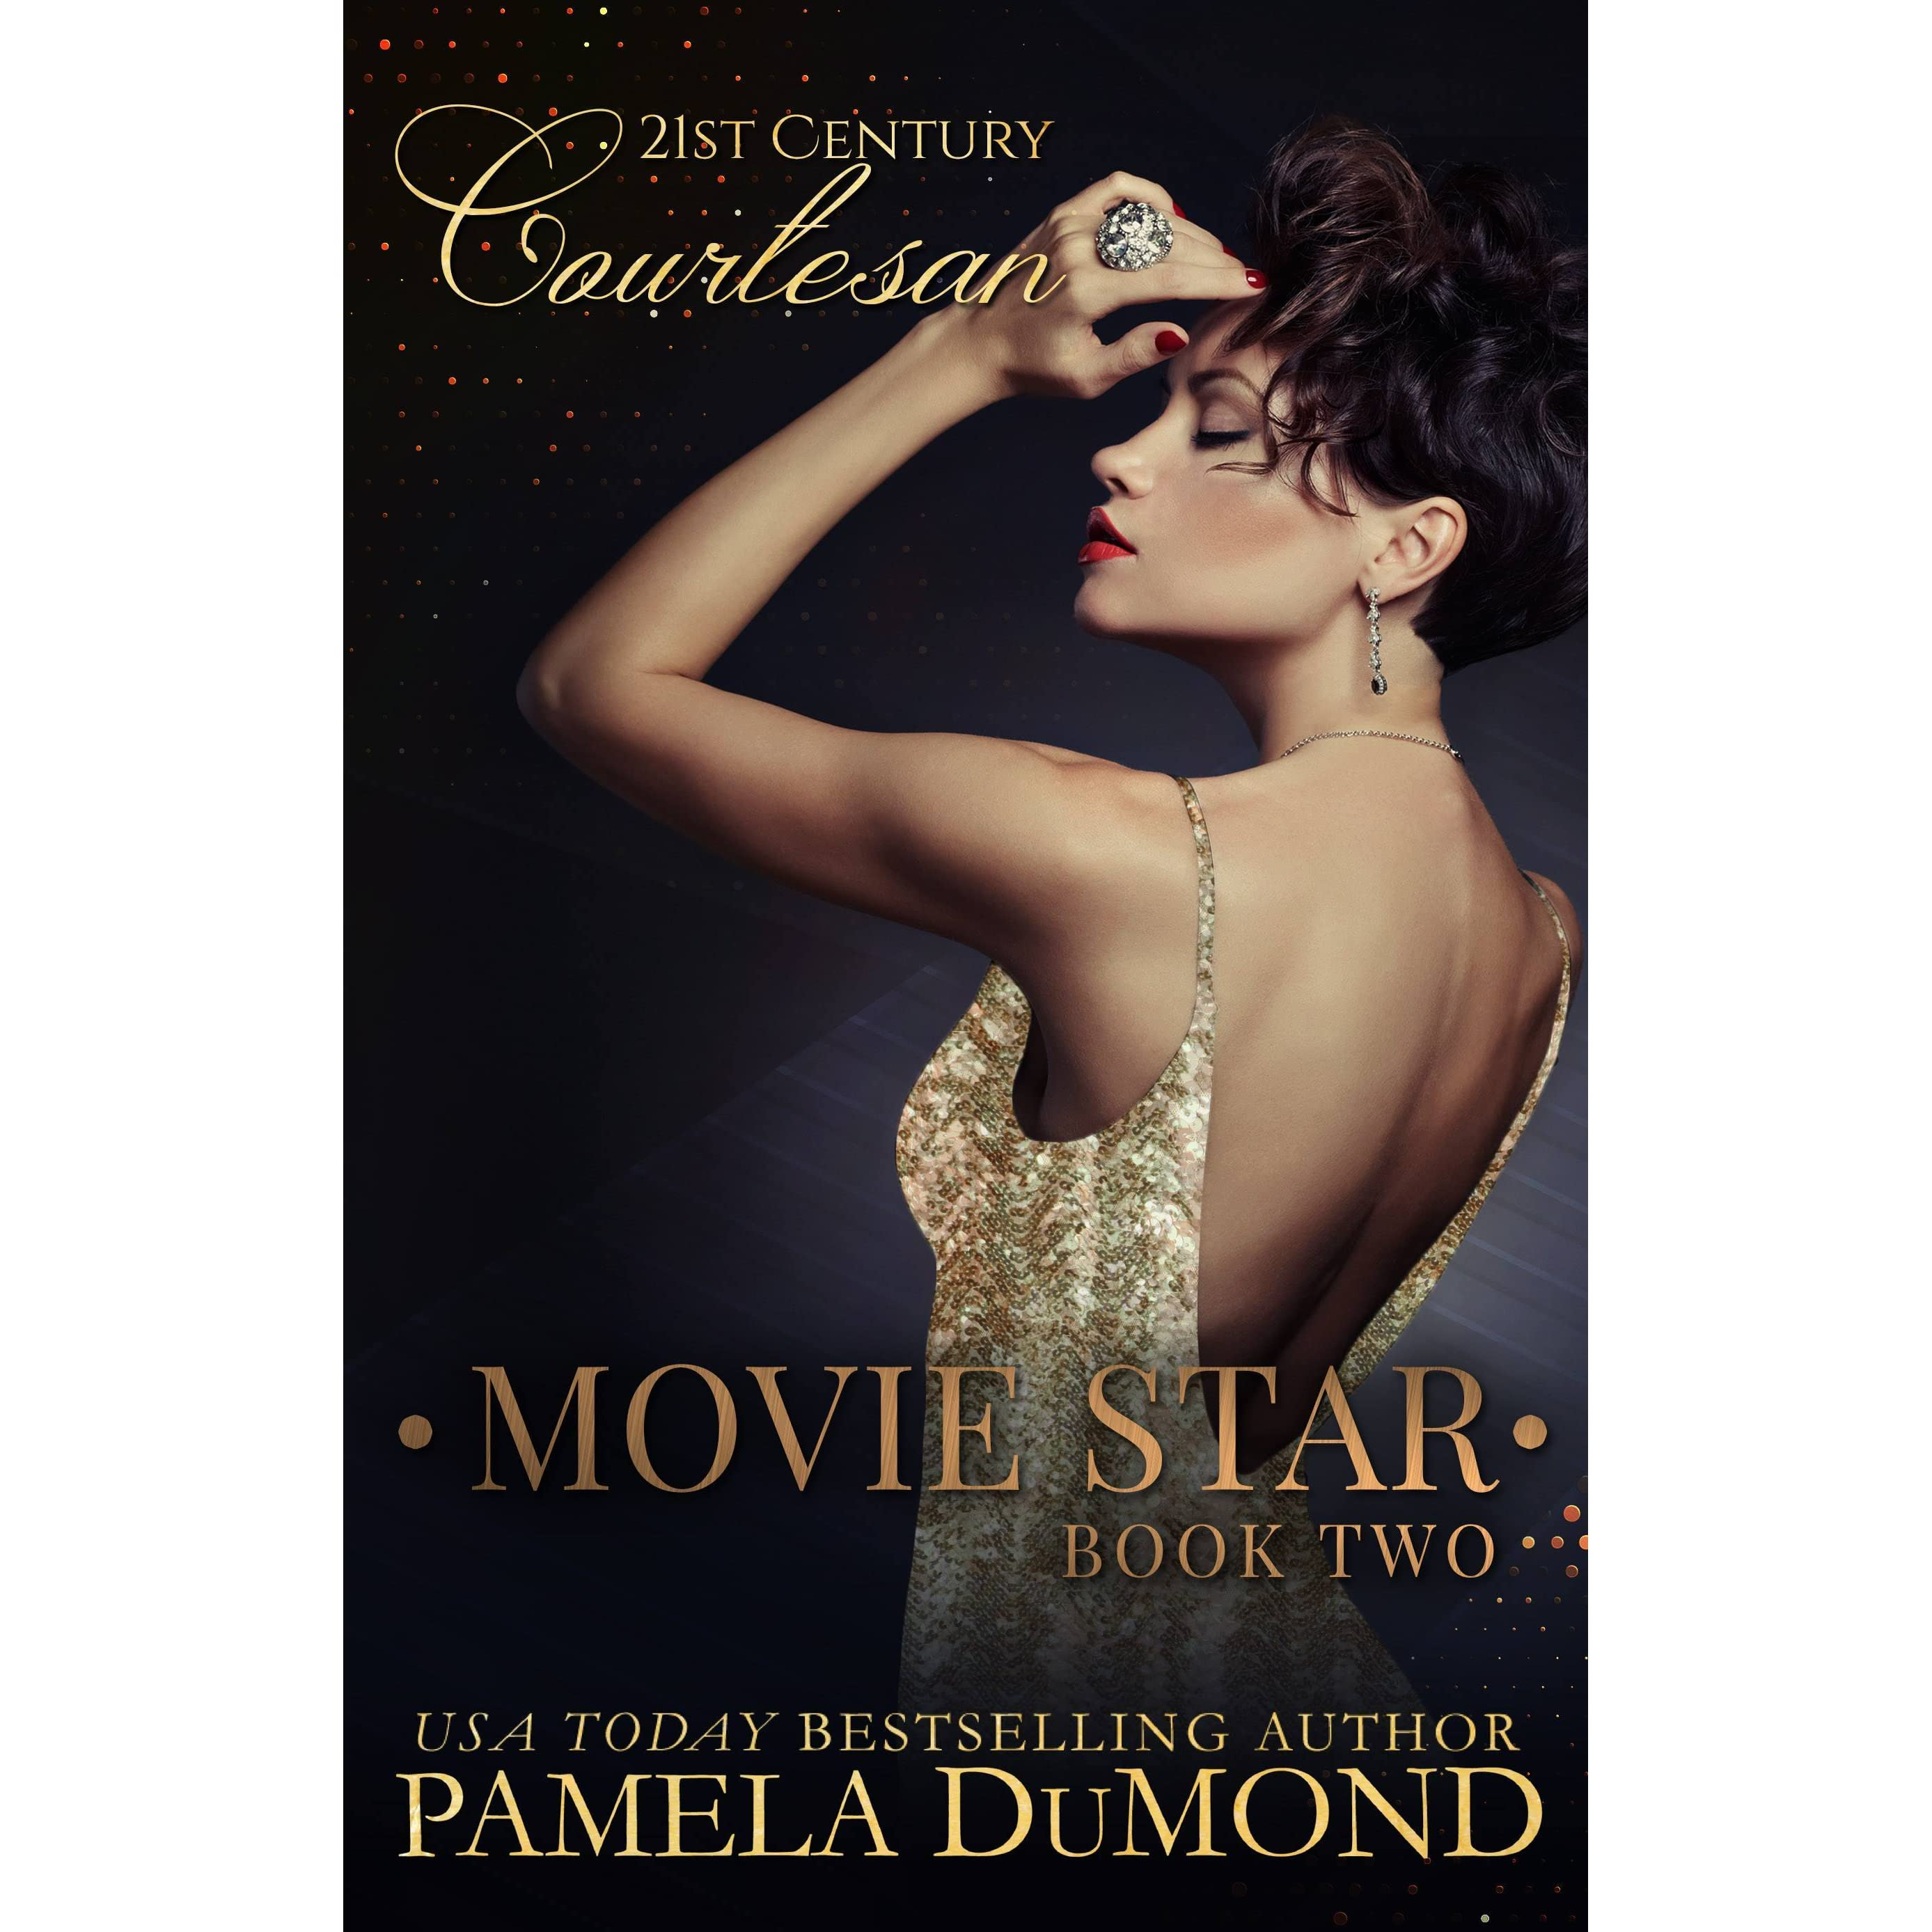 The Courtesans Masquerade: A Tale of Erotic Intrigue